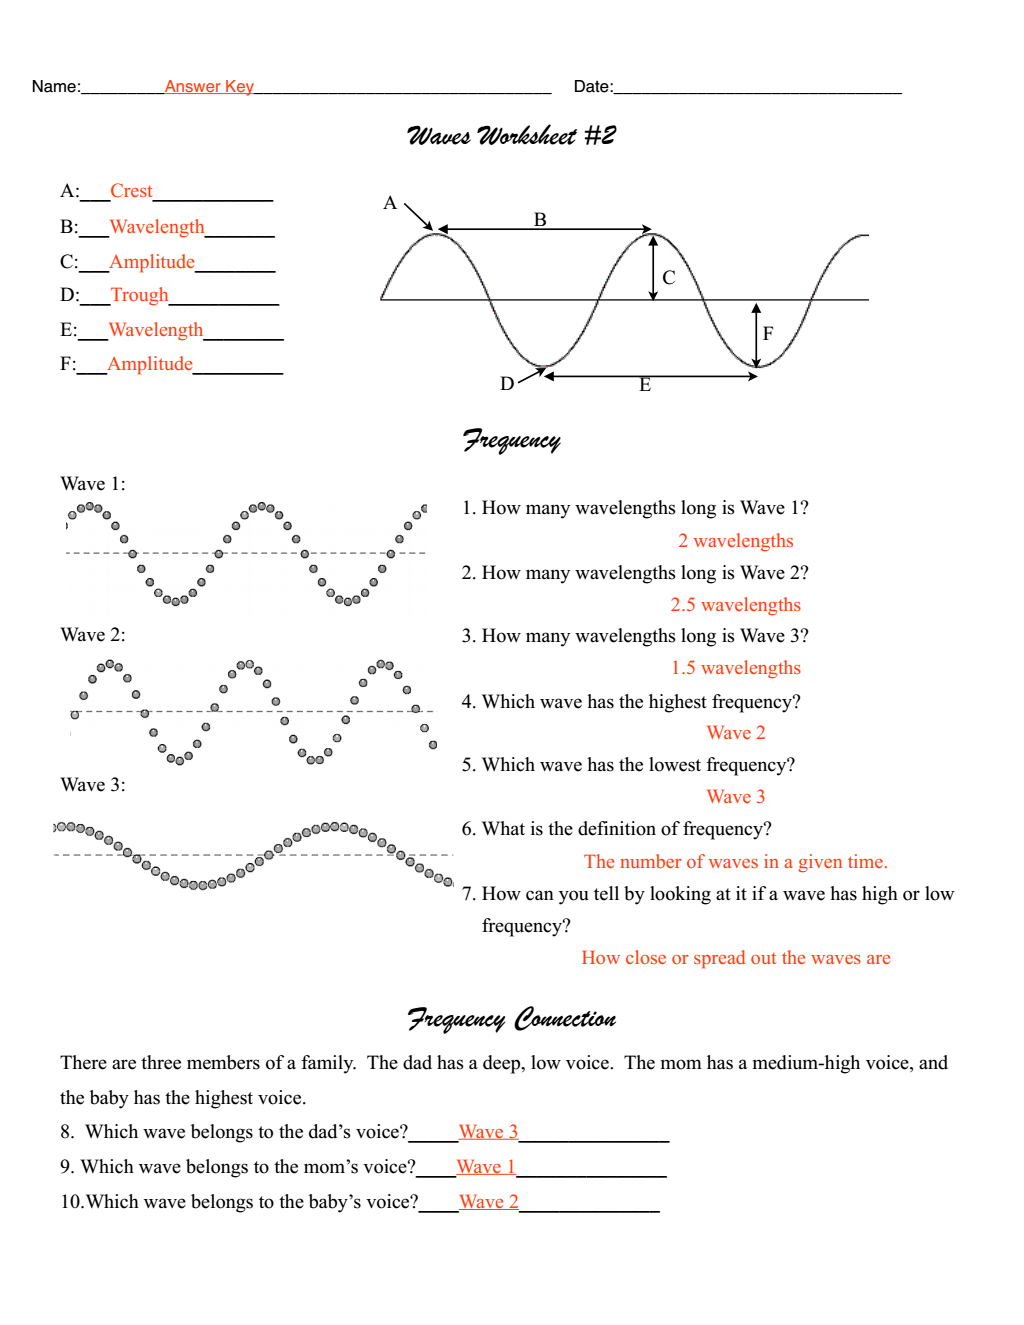 hight resolution of Waves Worksheet #2 Answers.pdf - Google Drive   Worksheets